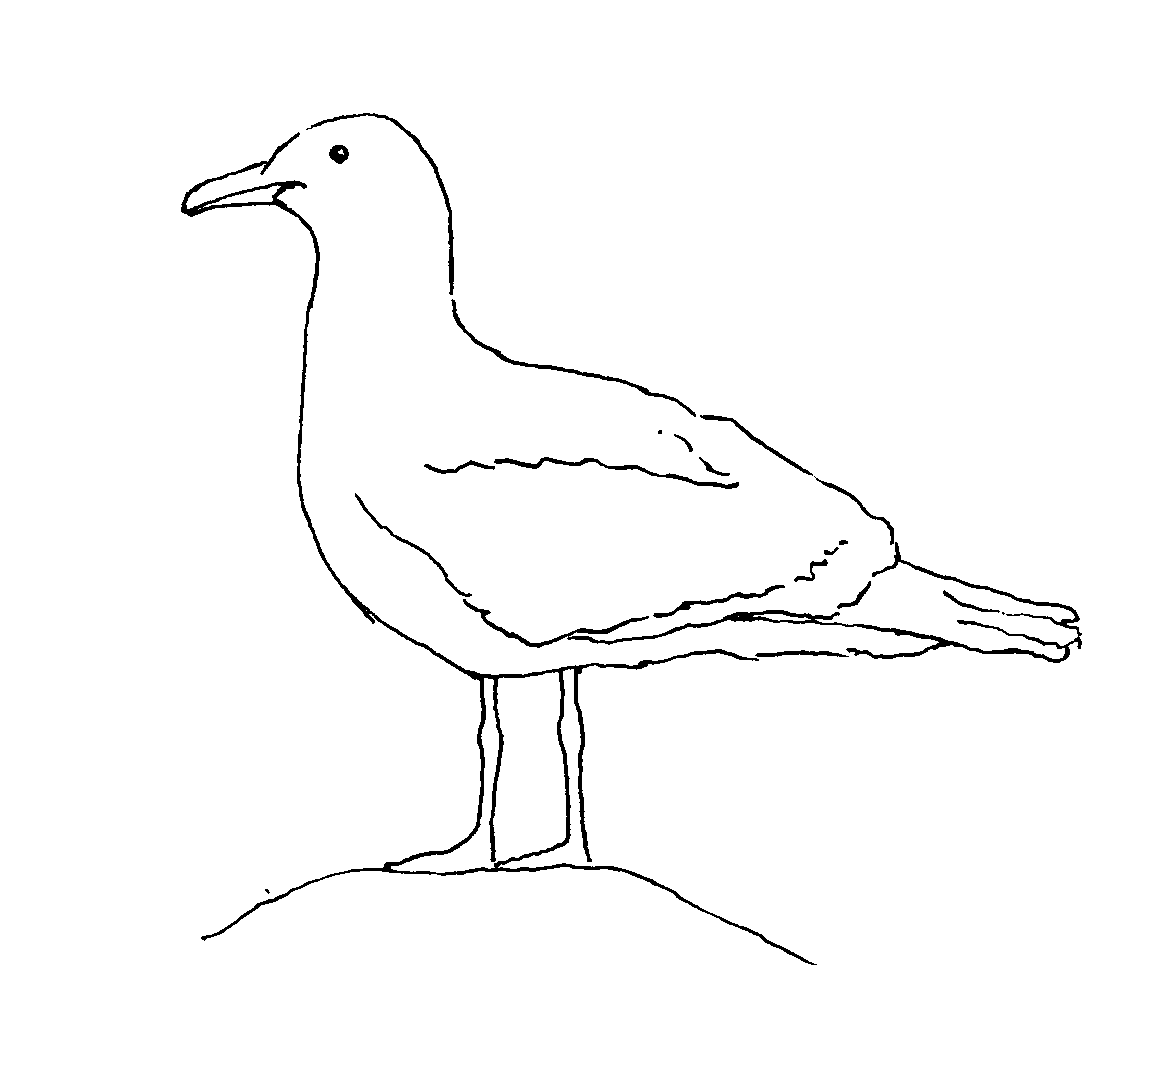 seagull in flight coloring pages - photo#27